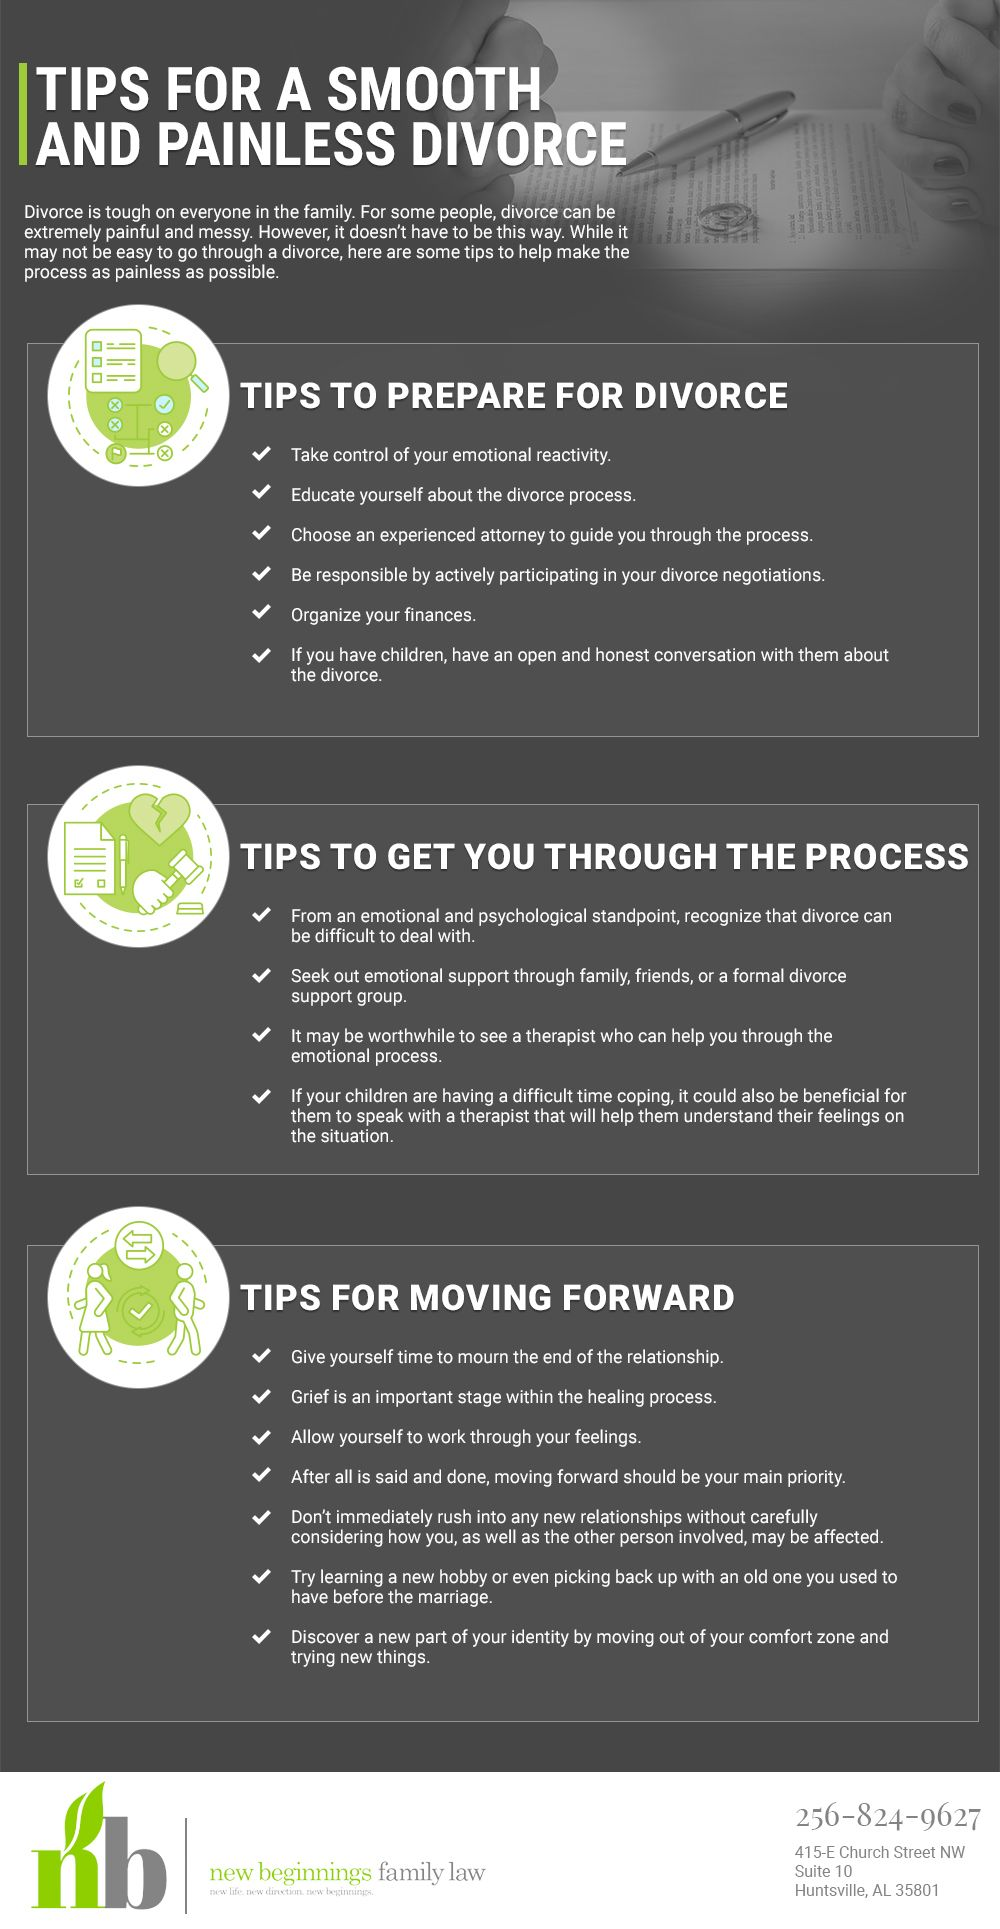 Pin by Newbeginningsfamilylawal on Divorce Infographic in